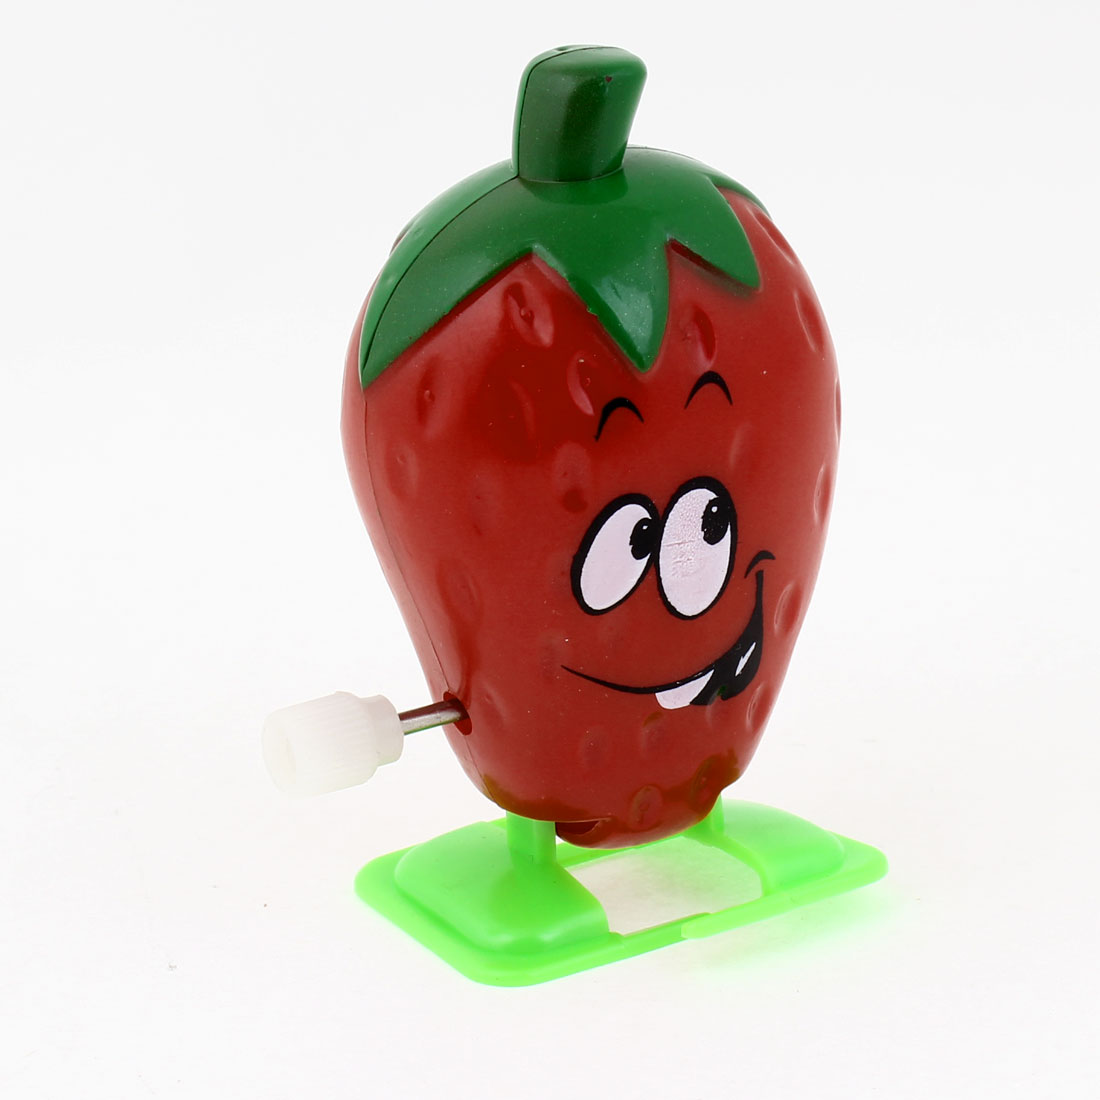 Strawberry Shape Red Green Plastic Artificial Walking Clockwork Toy for Children